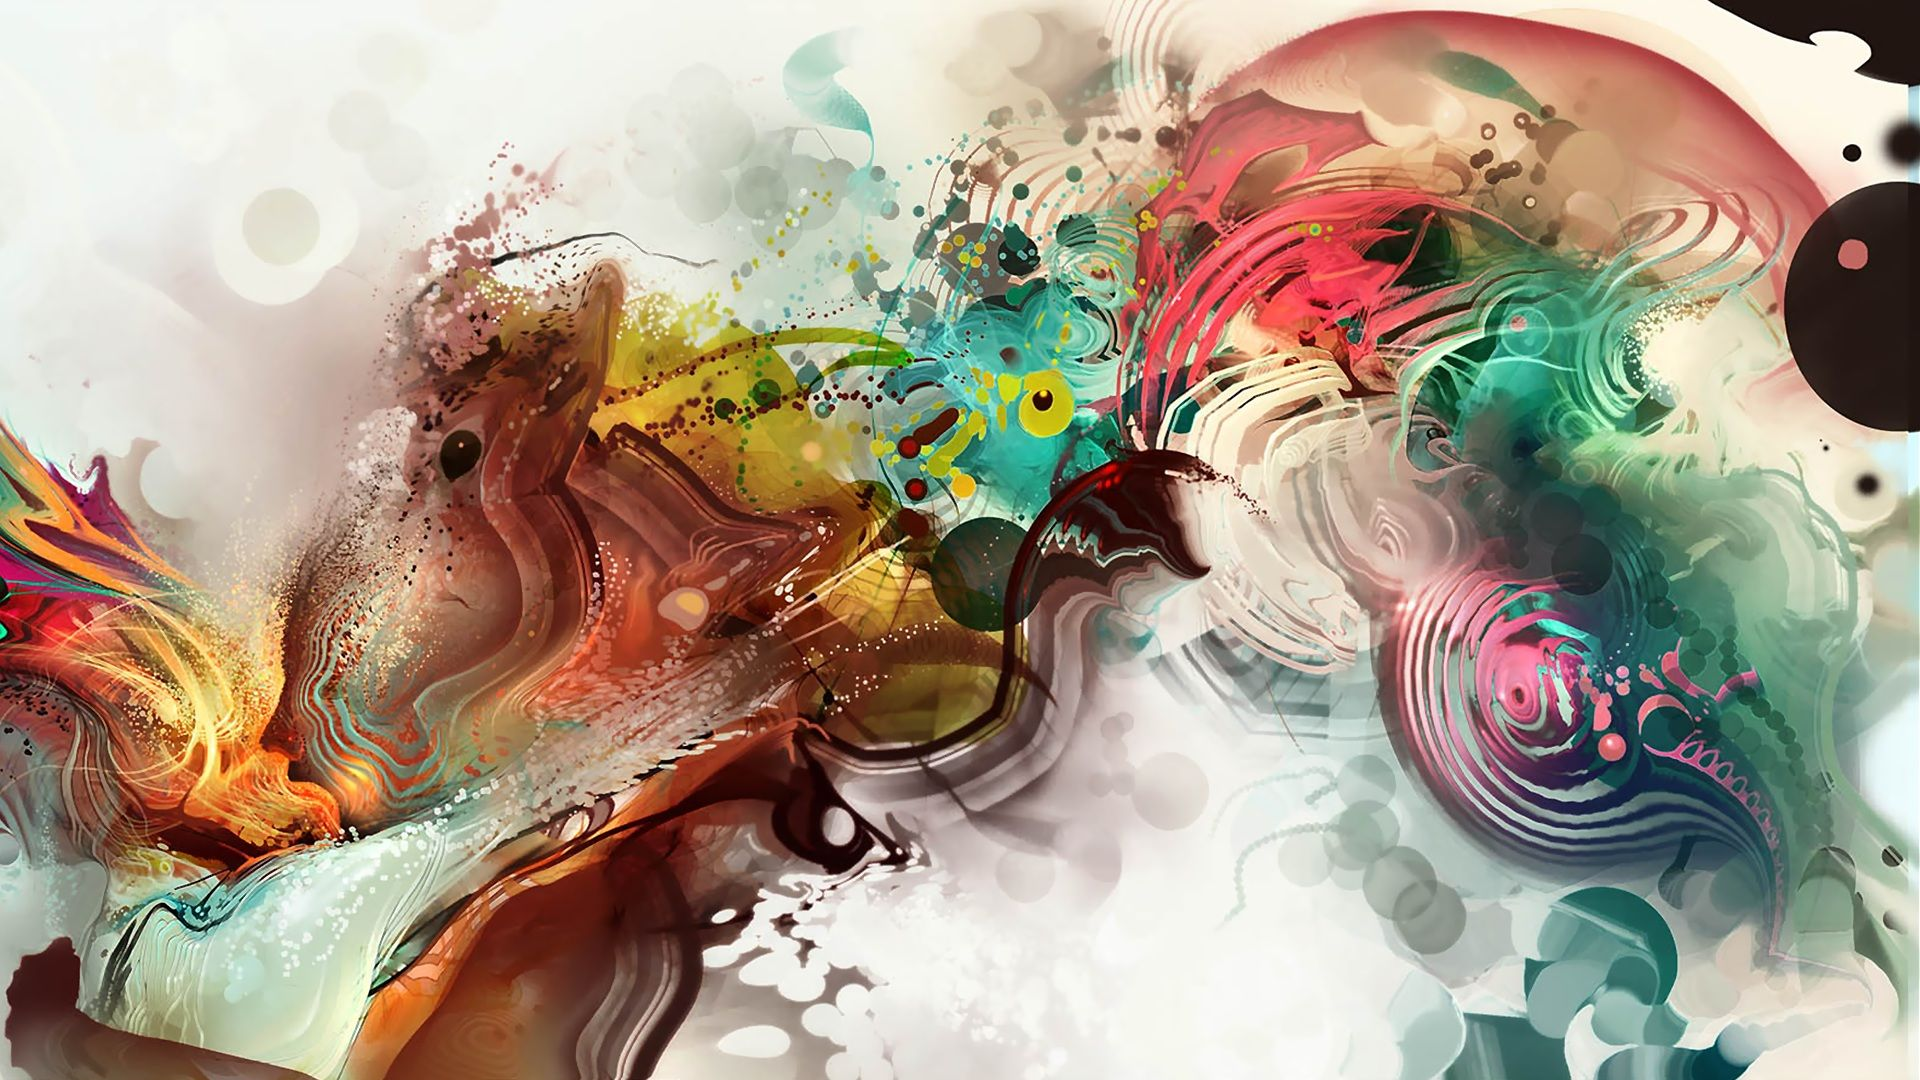 Artistic Abstract Wallpaper Hd Resolution Abstract Wallpapers